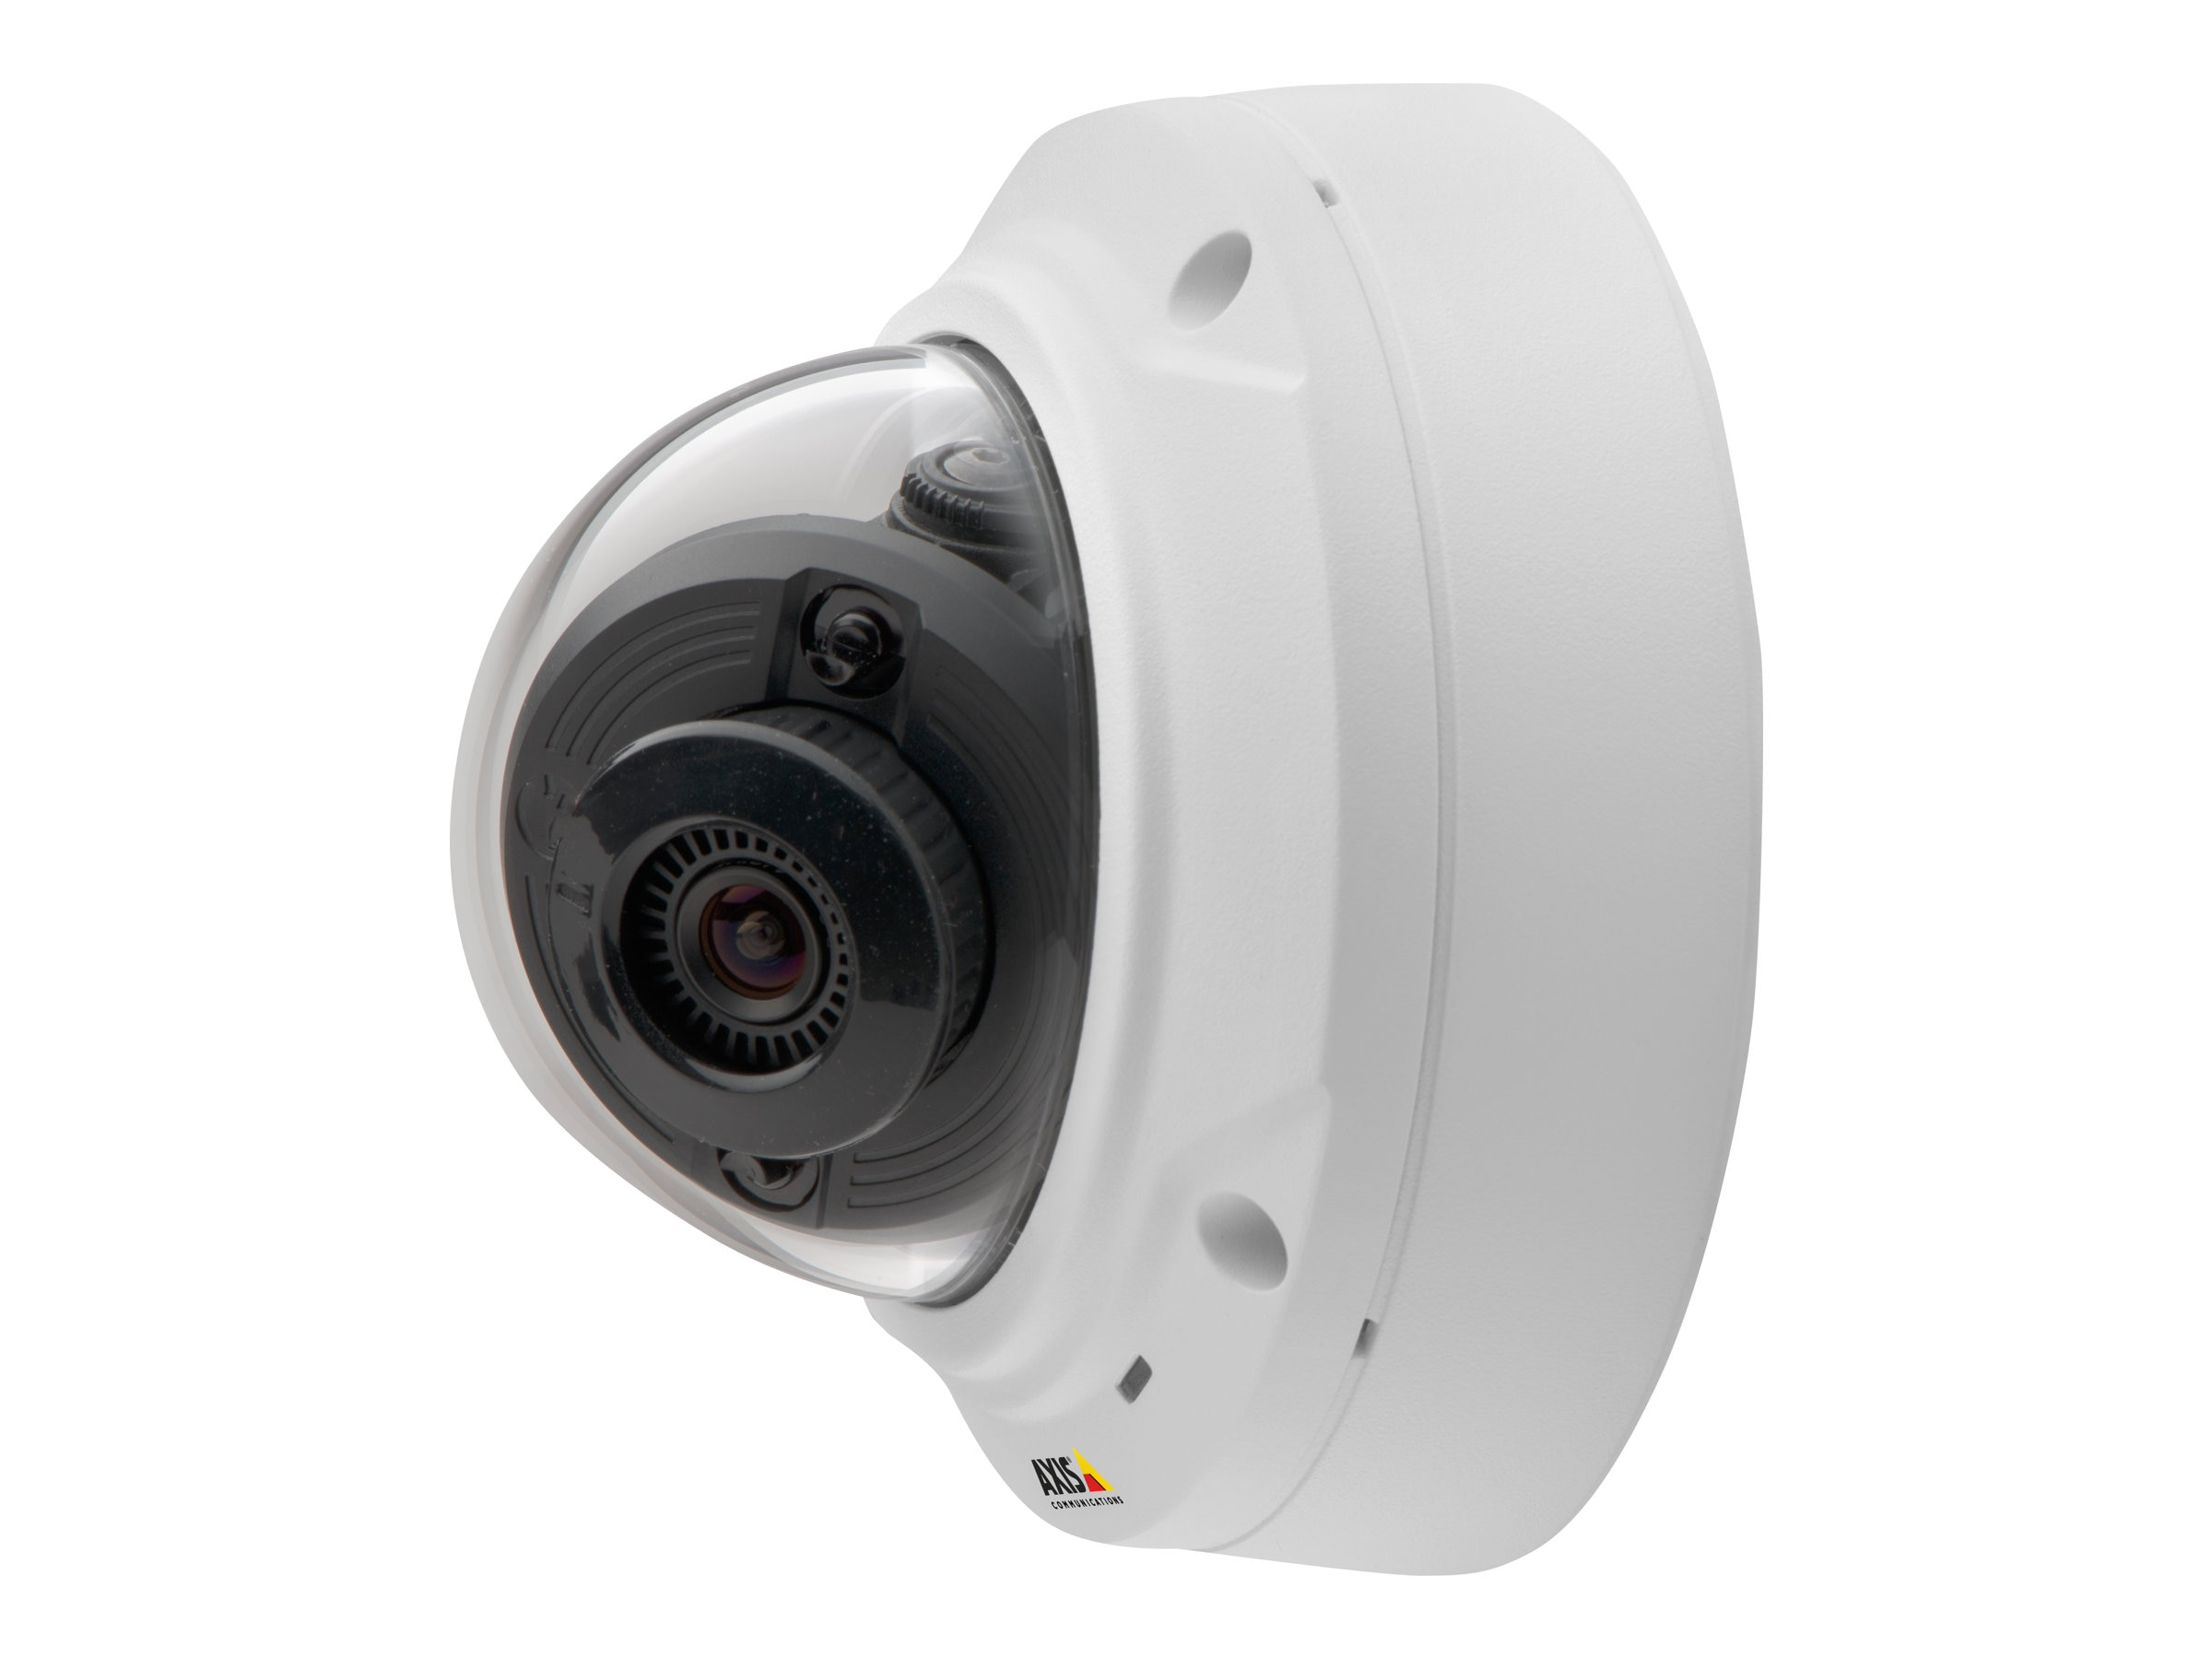 Axis M3024-LVE Outdoor Day Night Network Camera